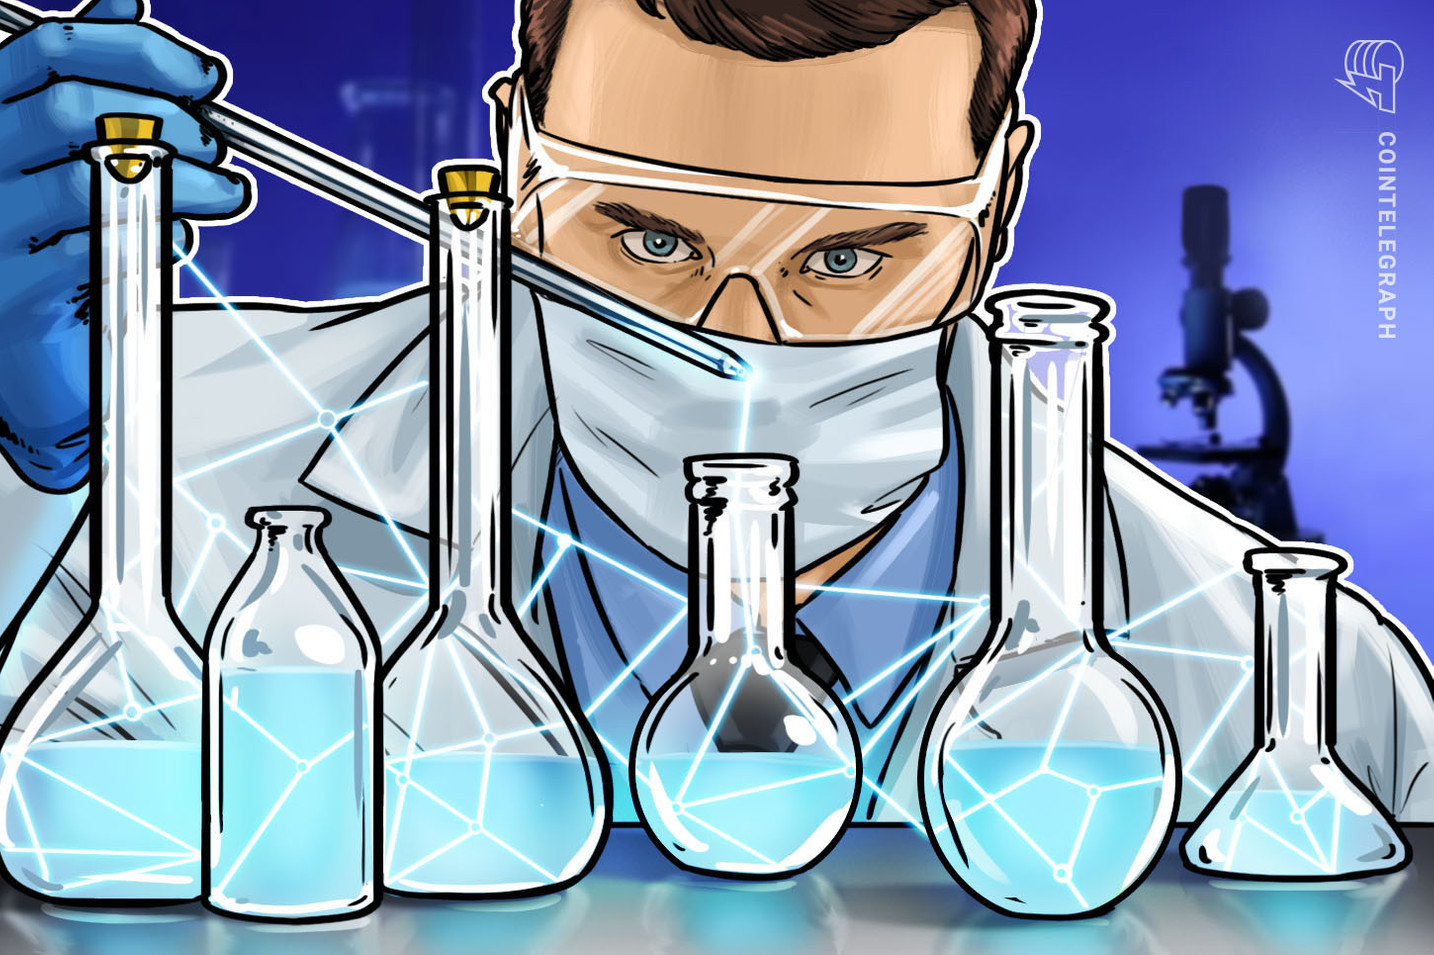 Food Tech Giant Bühler Reveals 'Blockchain-Ready' Tools to Combat Salmonella and E. Coli